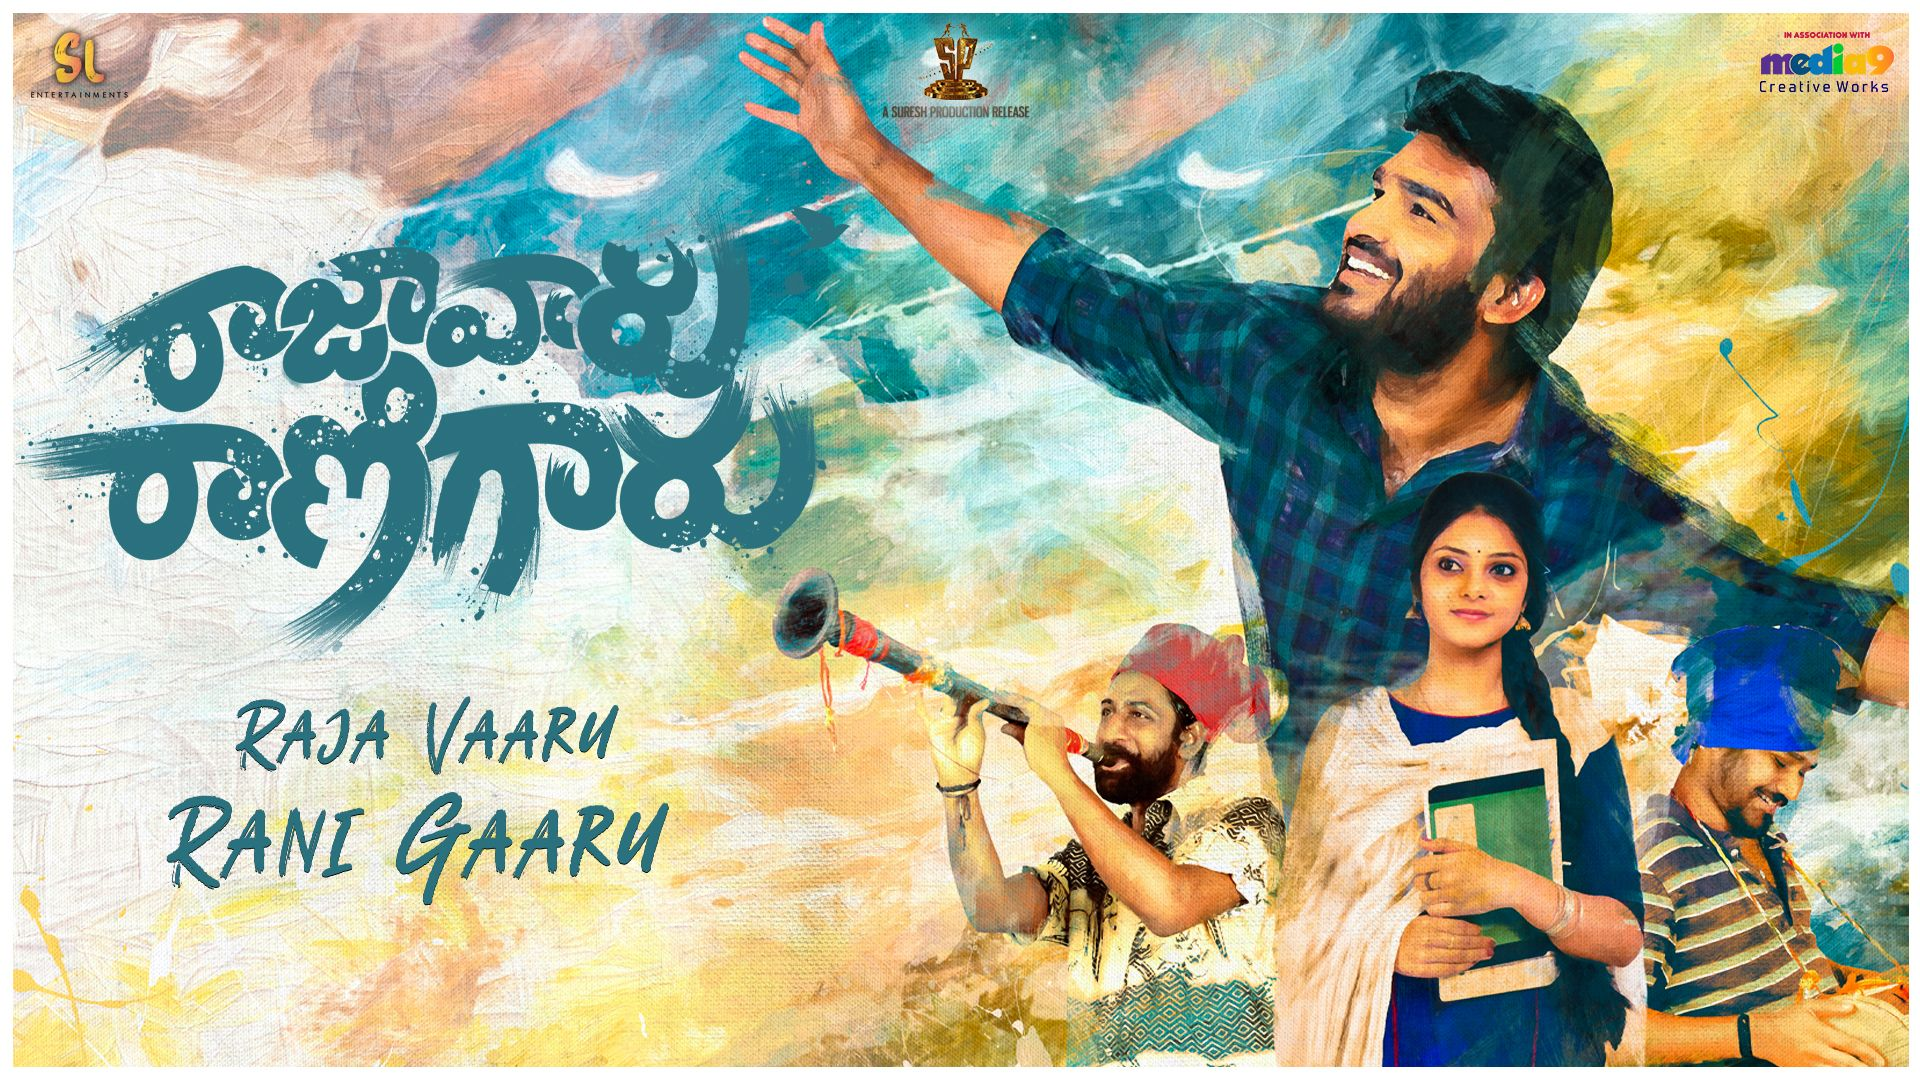 Raja Vaaru Rani Gaaru movie